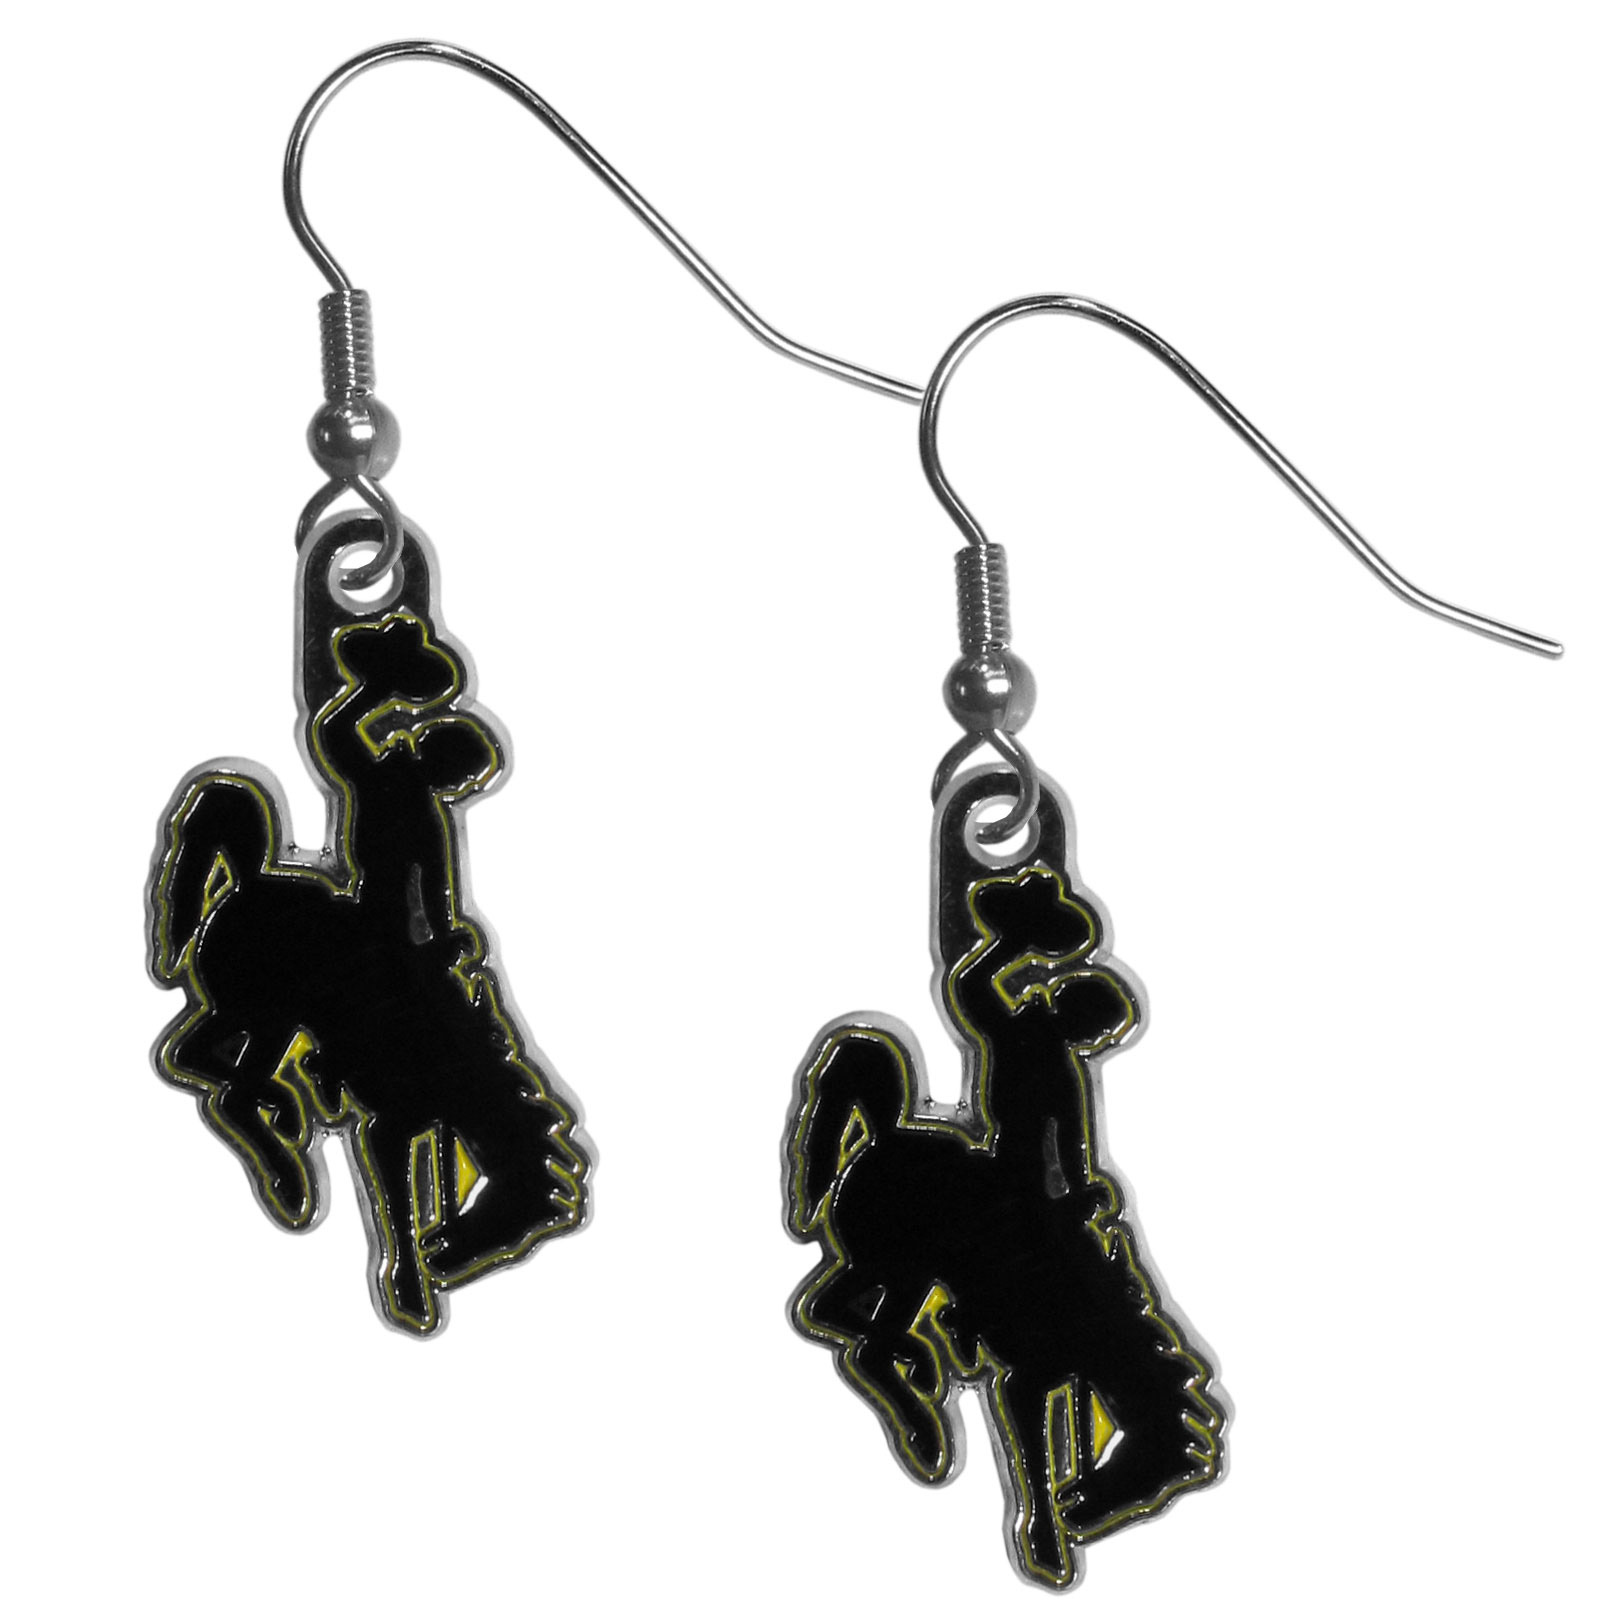 Wyoming Cowboys Chrome Dangle Earrings - Our officially licensed chrome dangle earrings have fully cast Wyoming Cowboy charms with exceptional detail and a hand enameled finish. The earrings have a high polish nickel free chrome finish and hypoallergenic fishhook posts.